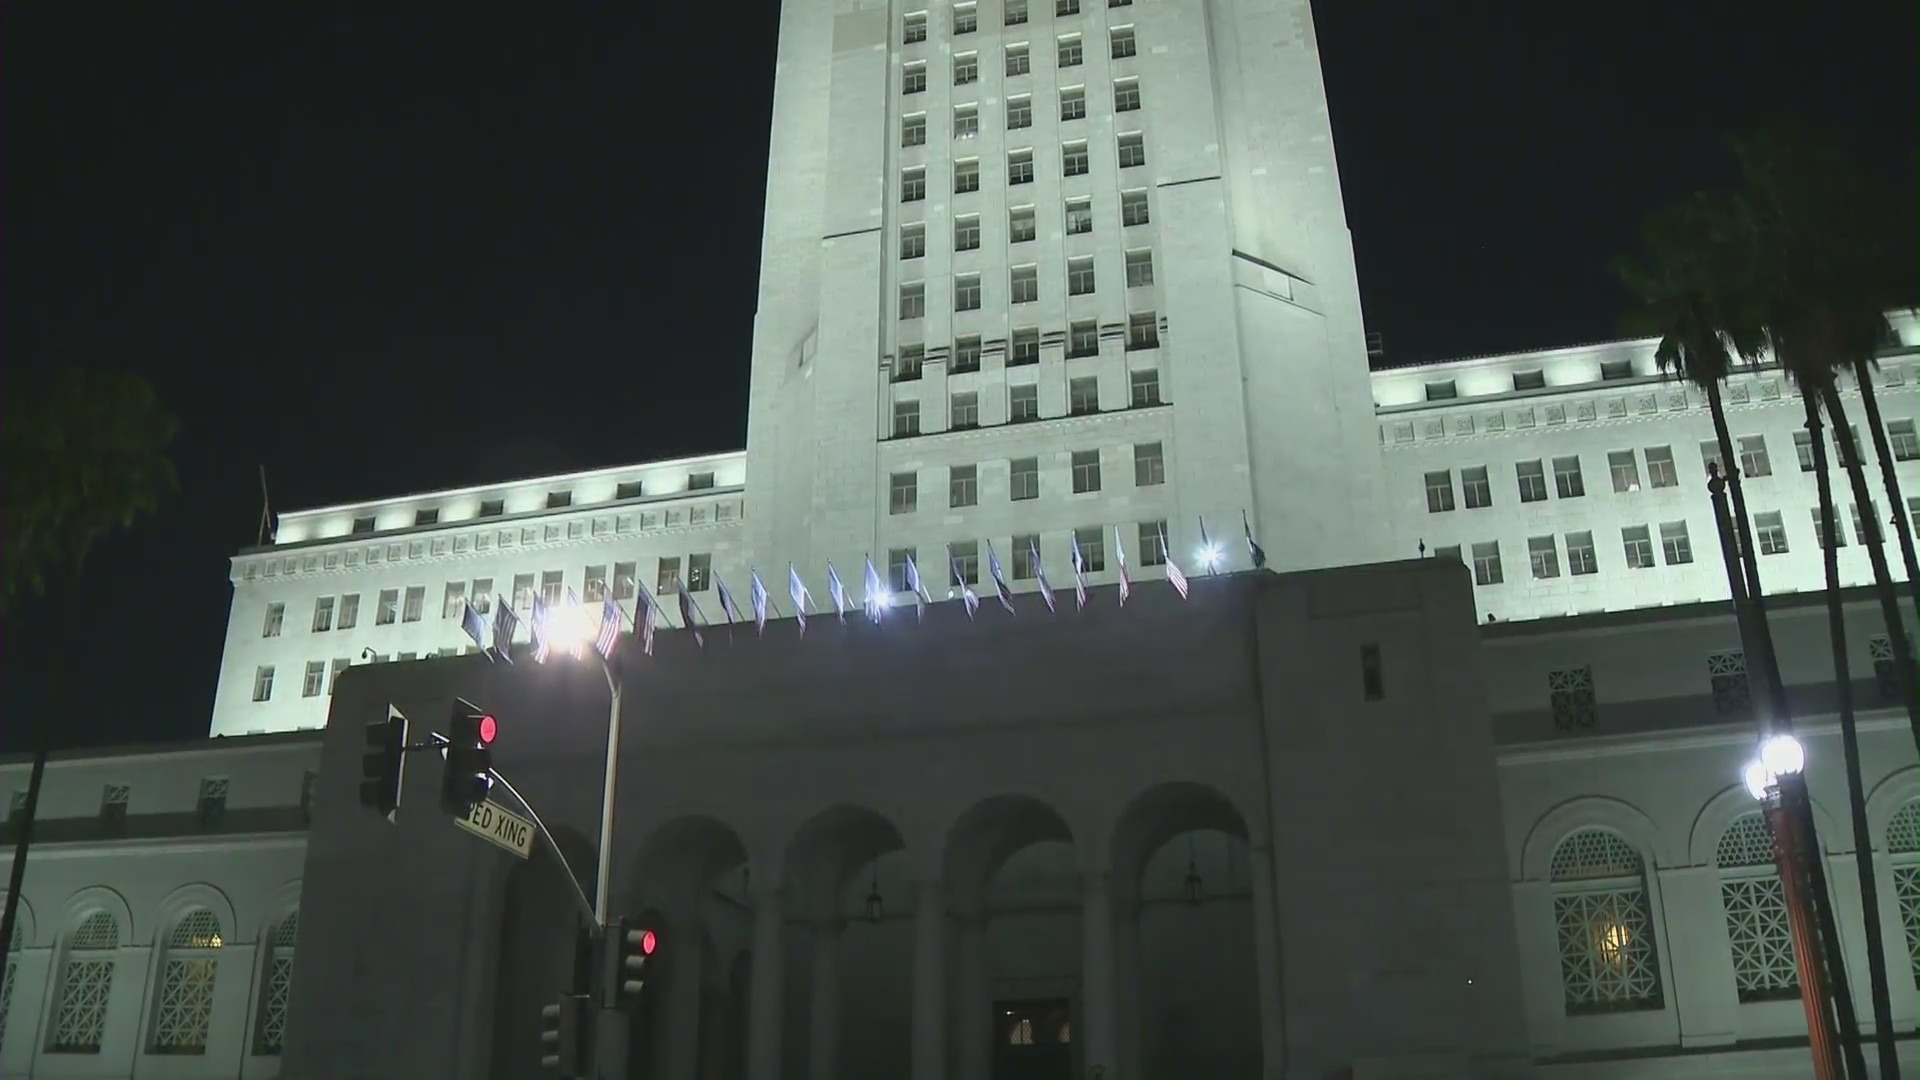 City Hall in downtown Los Angeles is seen in this file image. (KTLA)